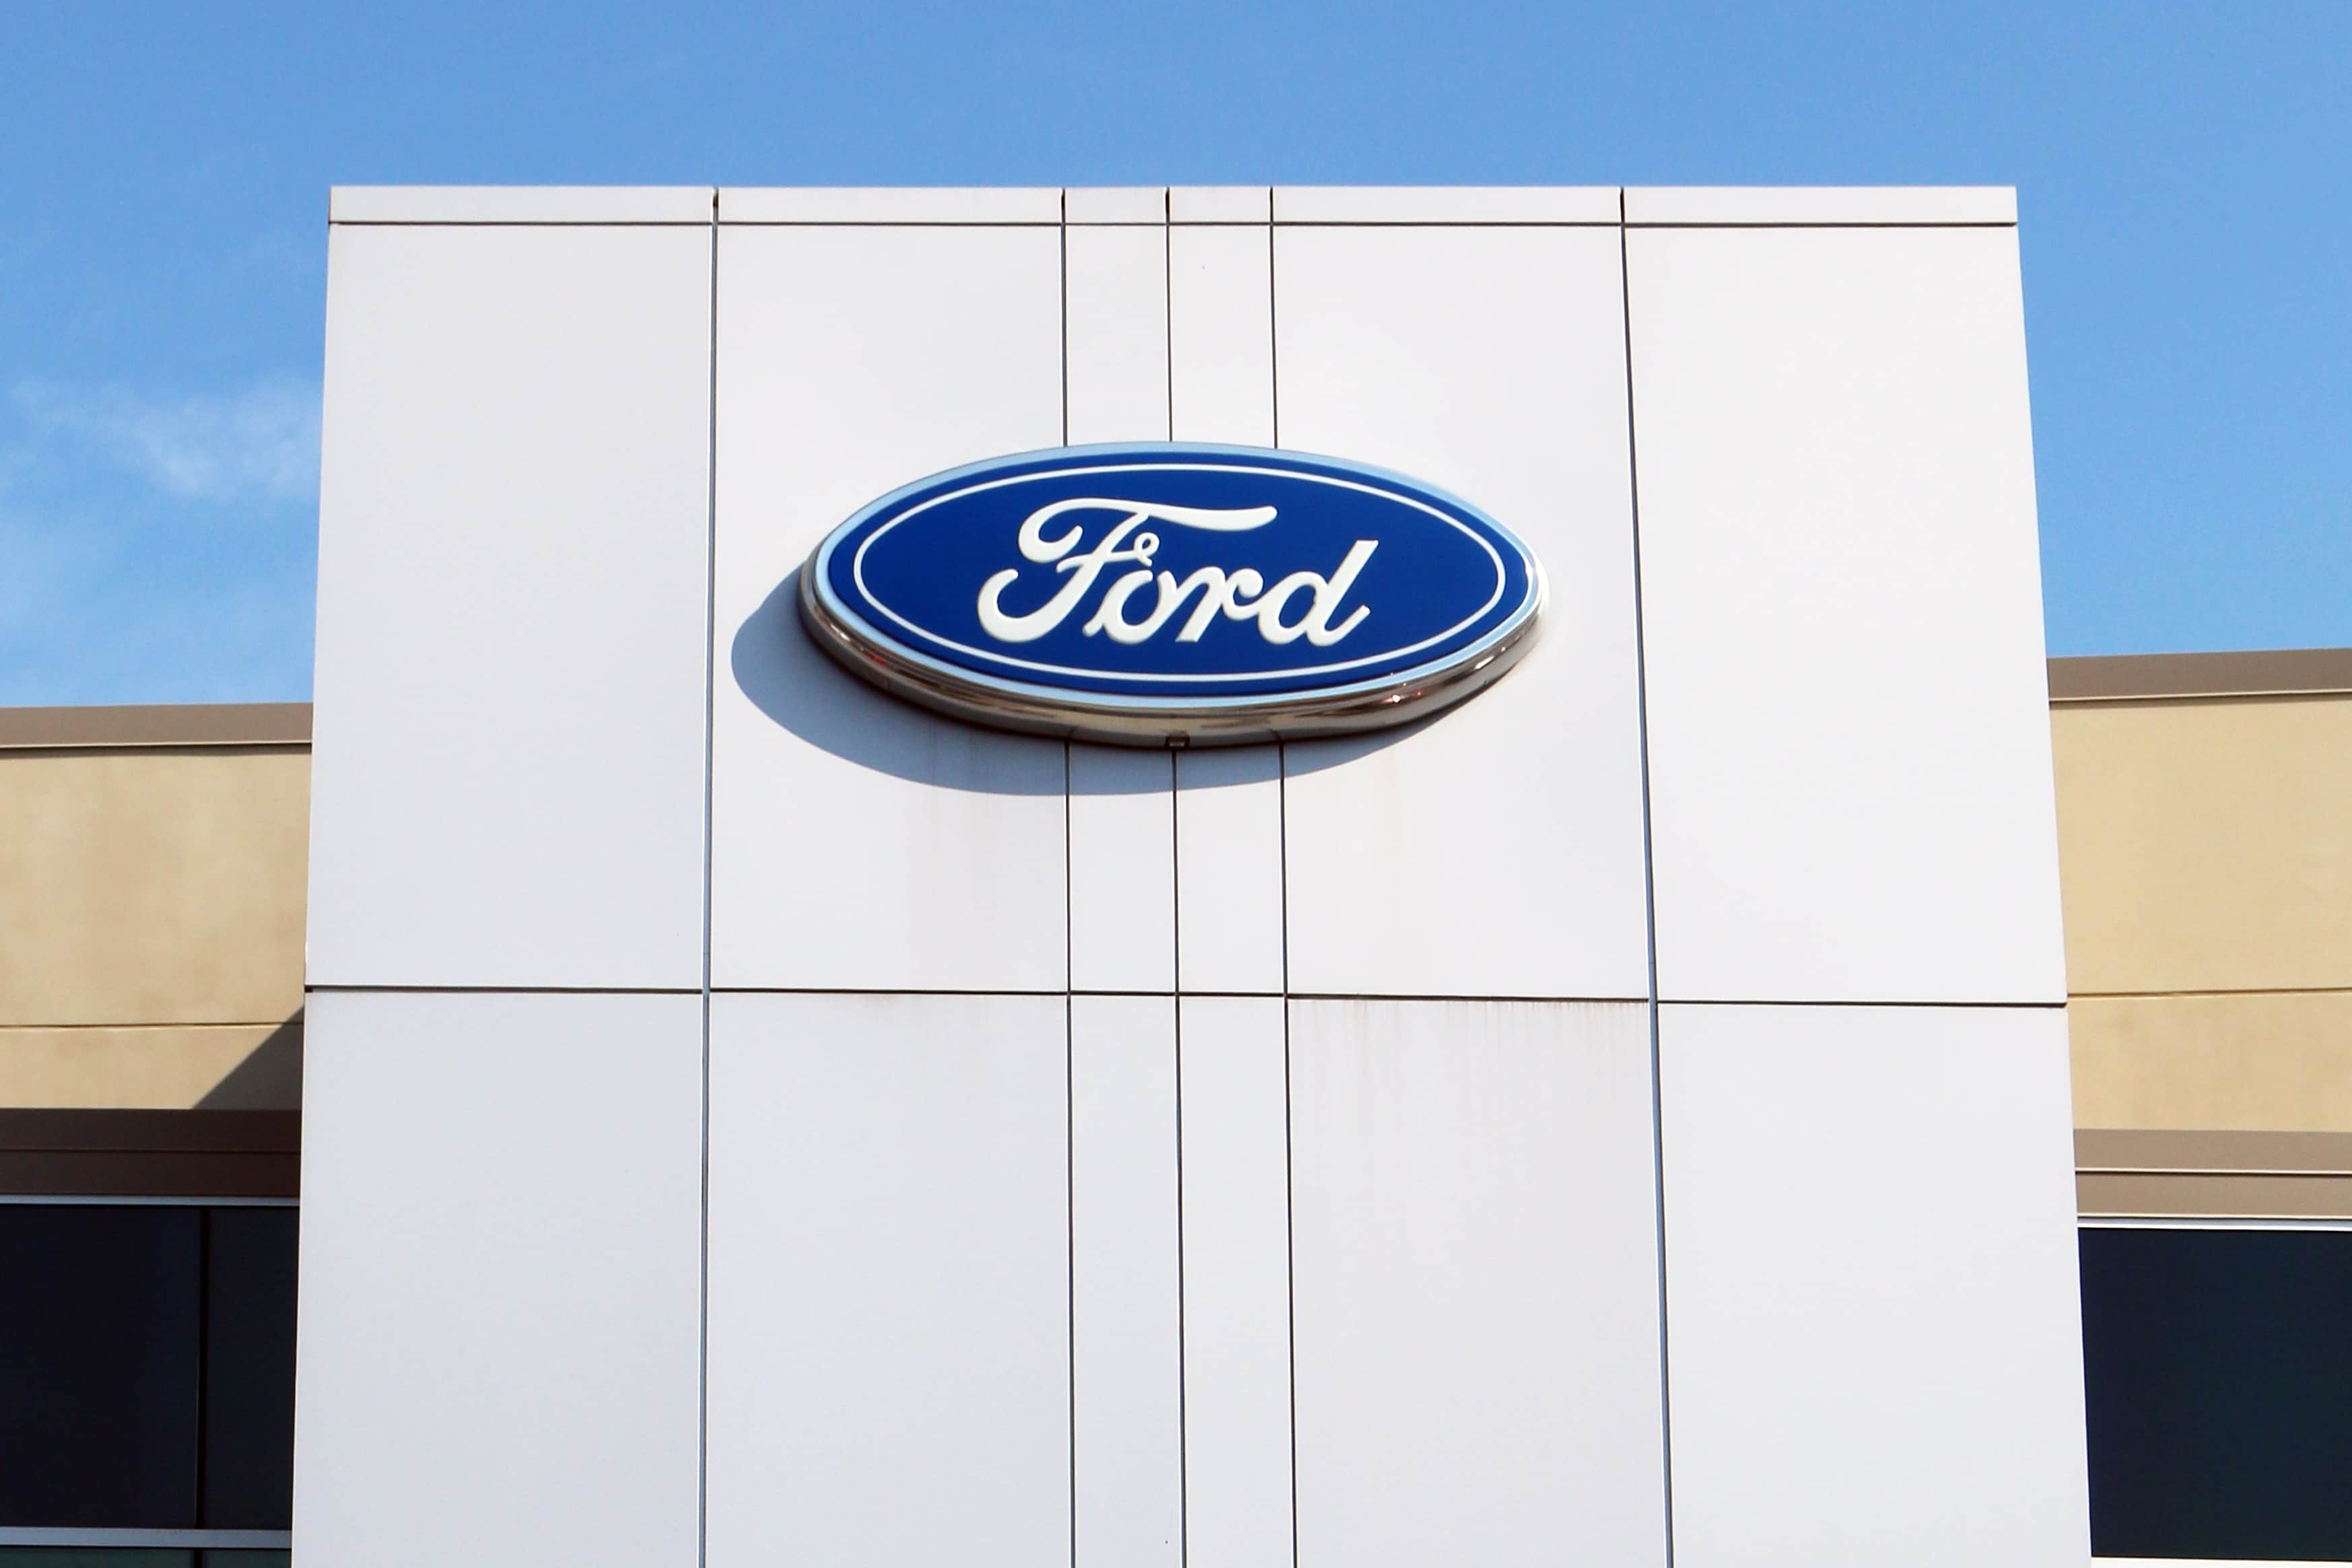 Ford Of Branford New Dealership In Ct 06405 Find An Engine Wiring Diagram For A 1998 F150 42 W V6 2017 Transit